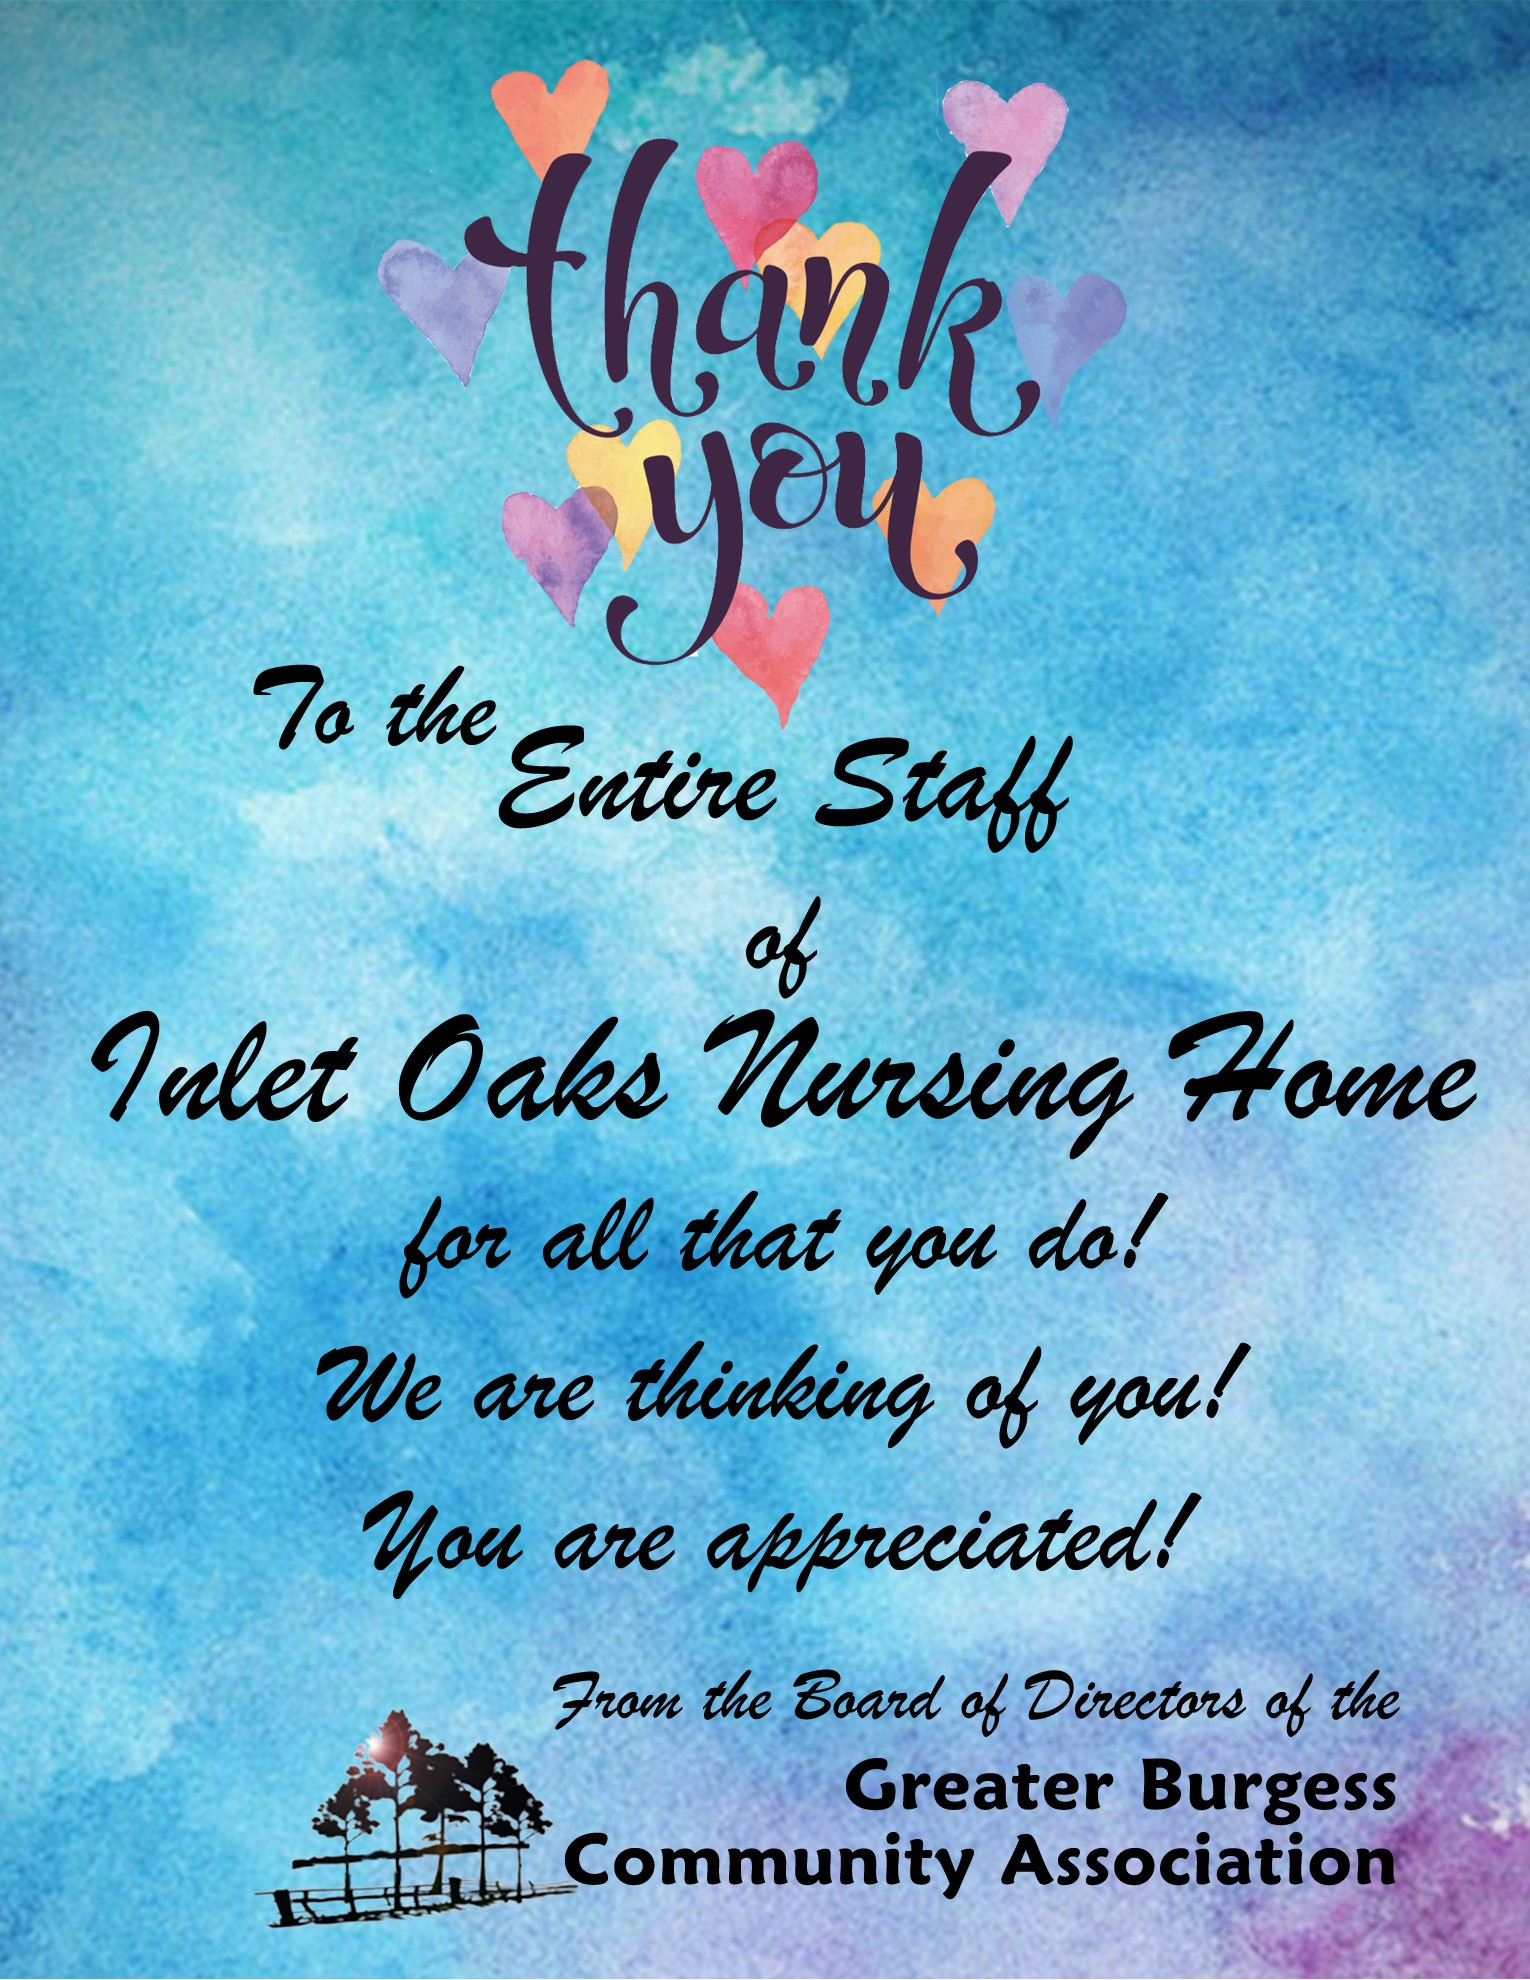 B-Thank-You-Inlet-Oaks